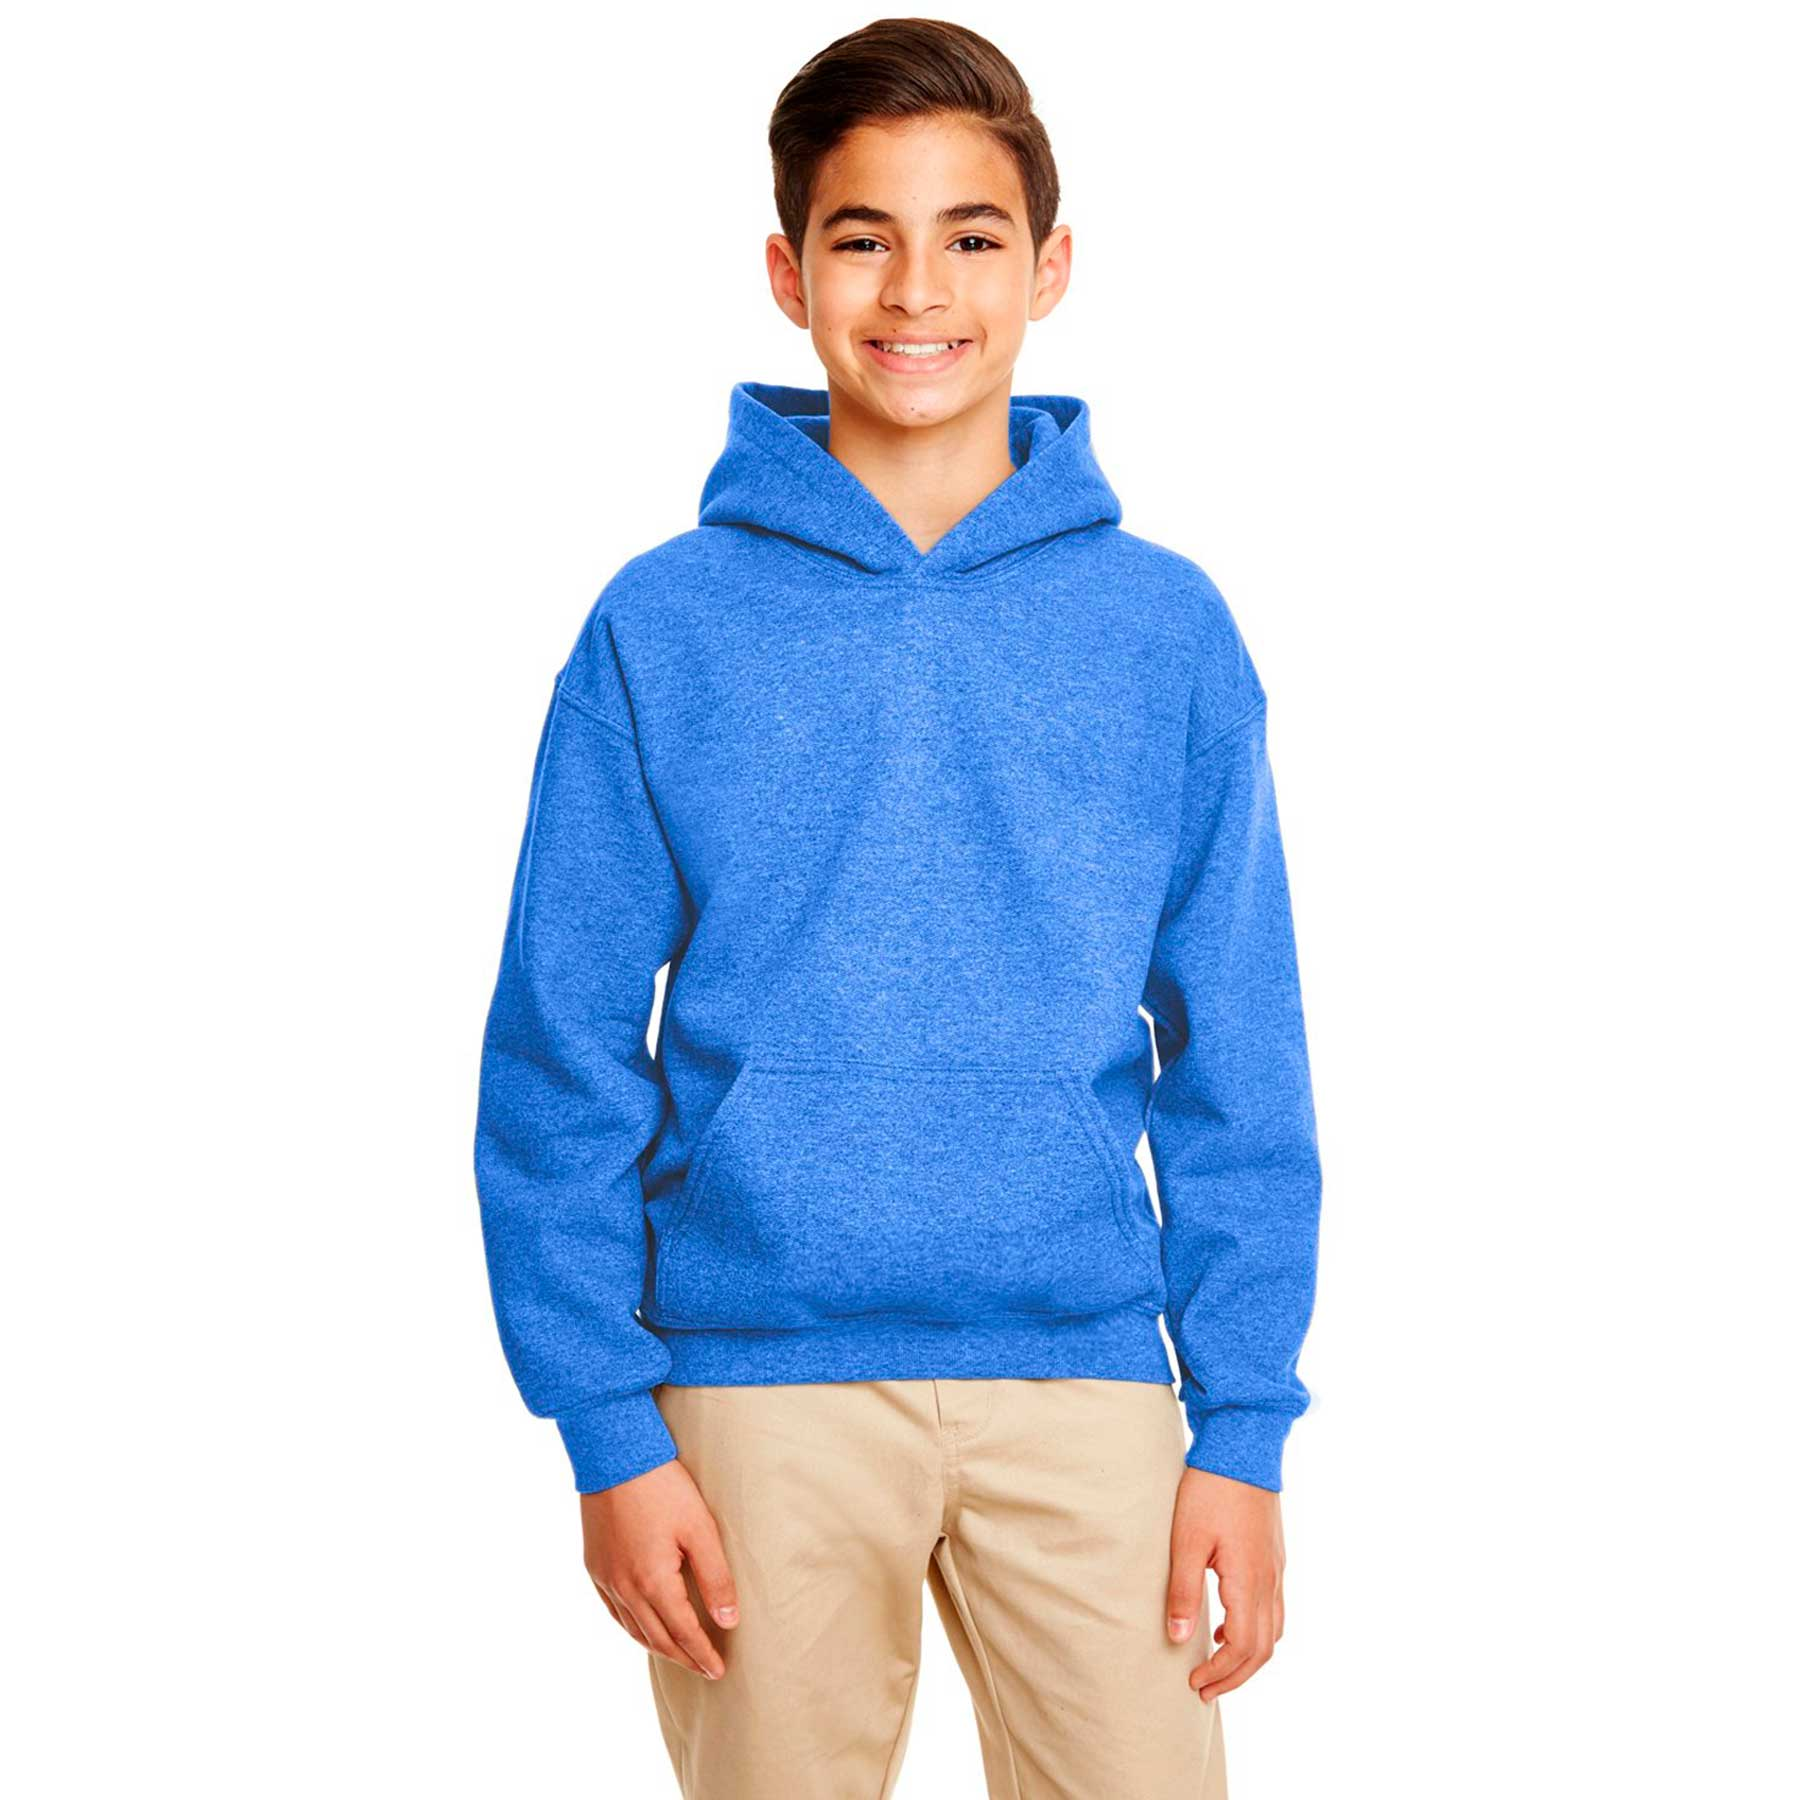 Apparel Catalog Youth Hoodies